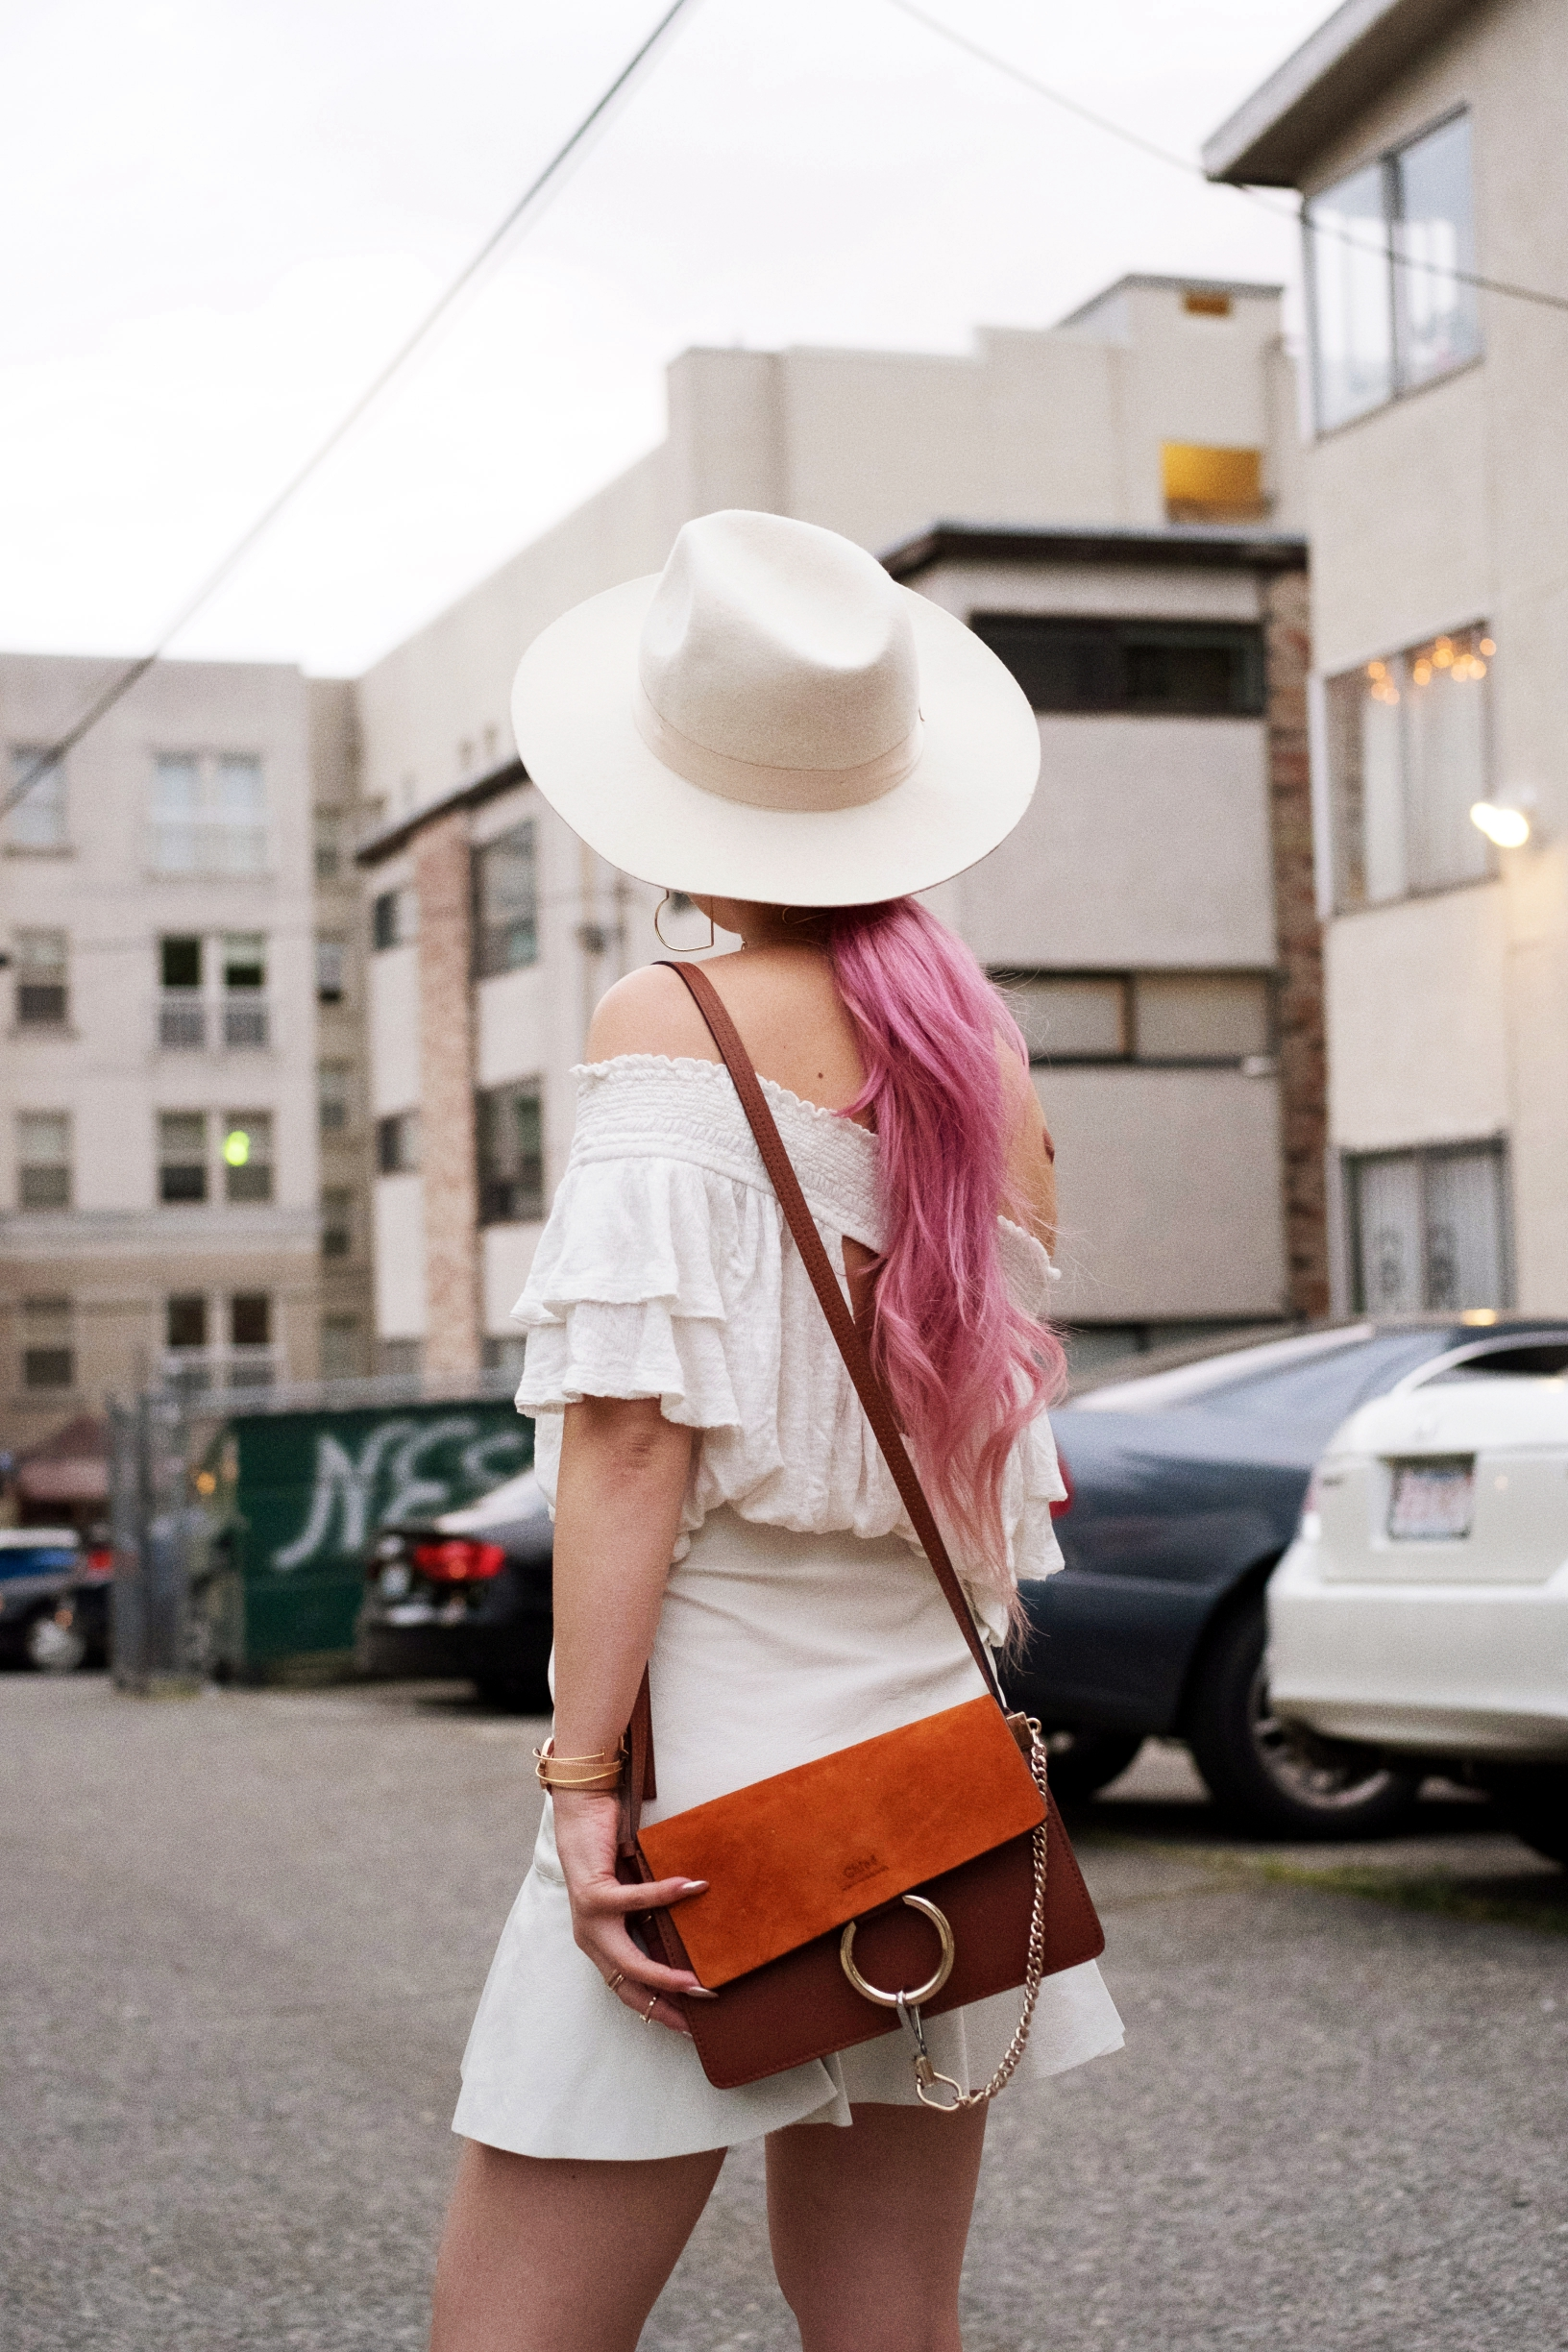 Free People Off the Shoulder top-Zara faux leather mini skirt-lack of color white fedora-free people mirrored sunglasses-chloe mini faye suede bag-daniel wellington watch-milani black cherry lipstick-asos lace up point toe pumps python print-aika's love closet-seattle fashion style blogger-japanese-pink hair 13